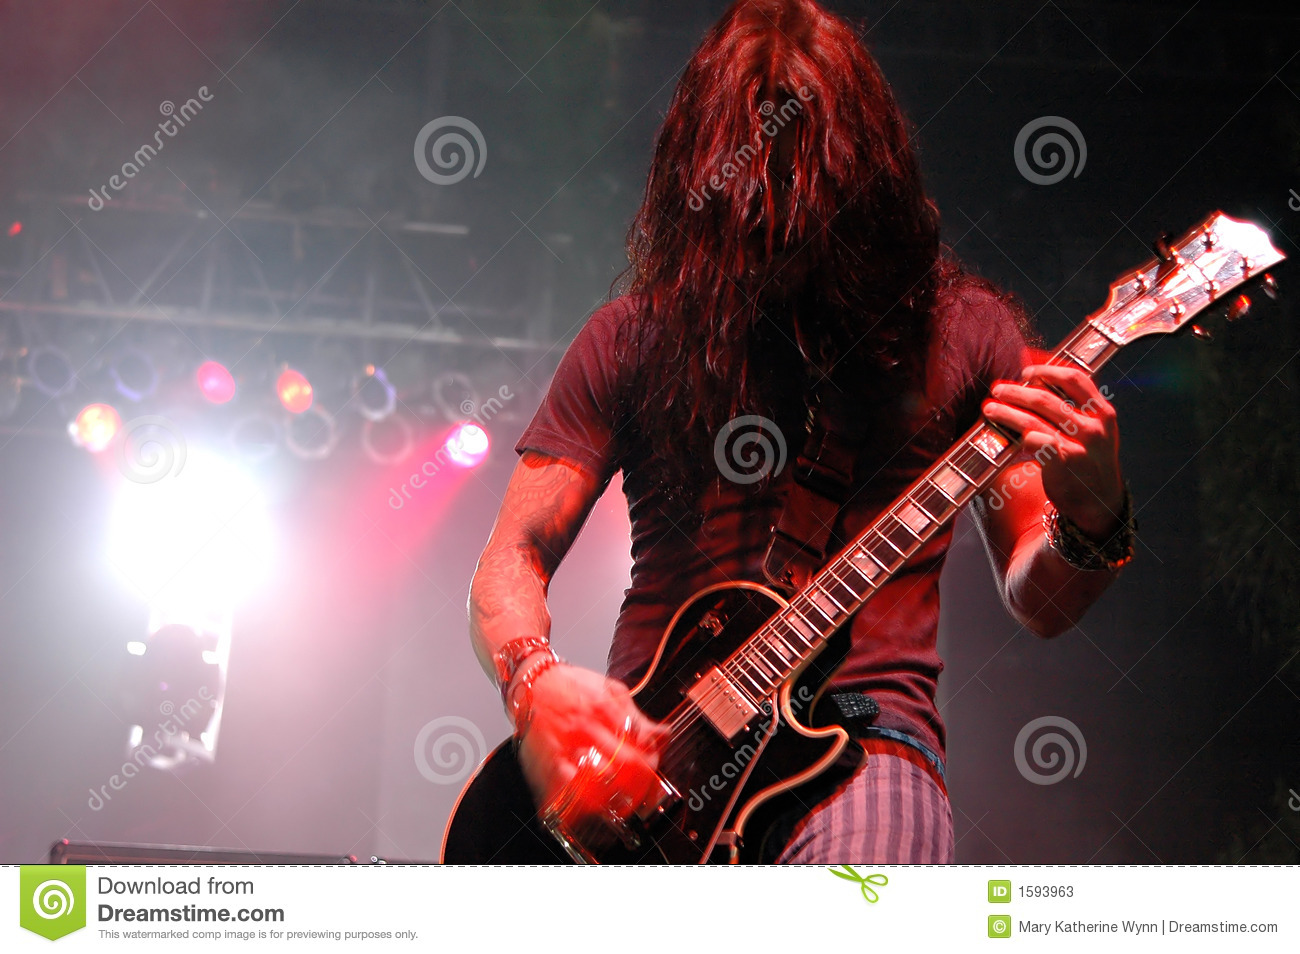 Guitar Solo Stock Photos - Image: 1593963